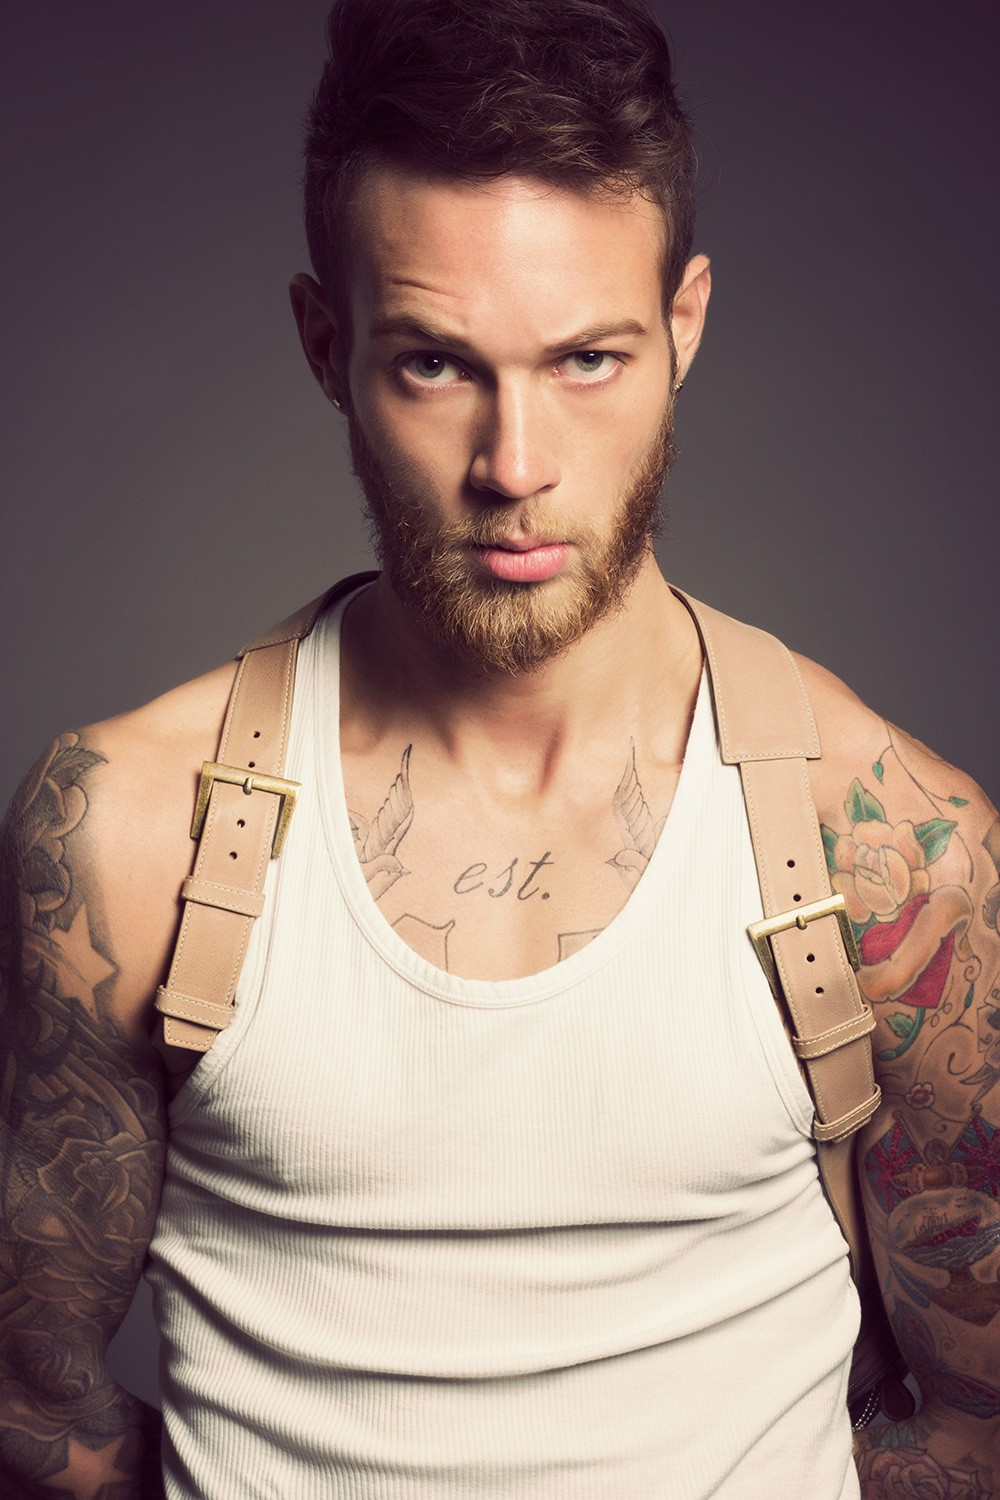 Billy Huxley, Photography By Maciek